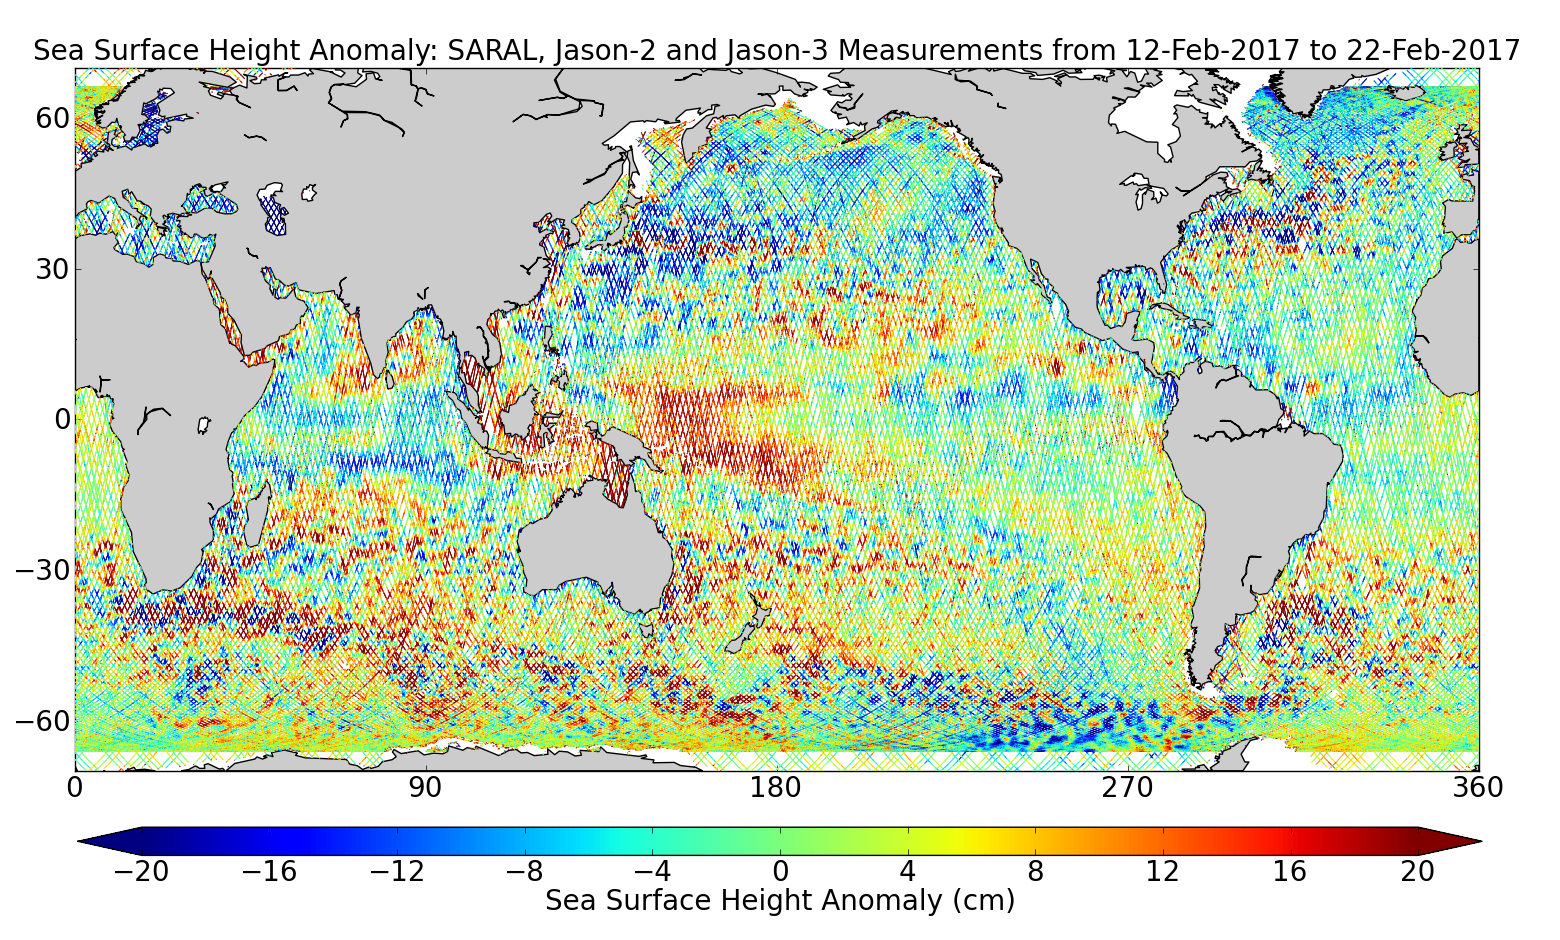 Sea Surface Height Anomaly: SARAL, Jason-2 and Jason-3 Measurements from 12-Feb-2017 to 22-Feb-2017